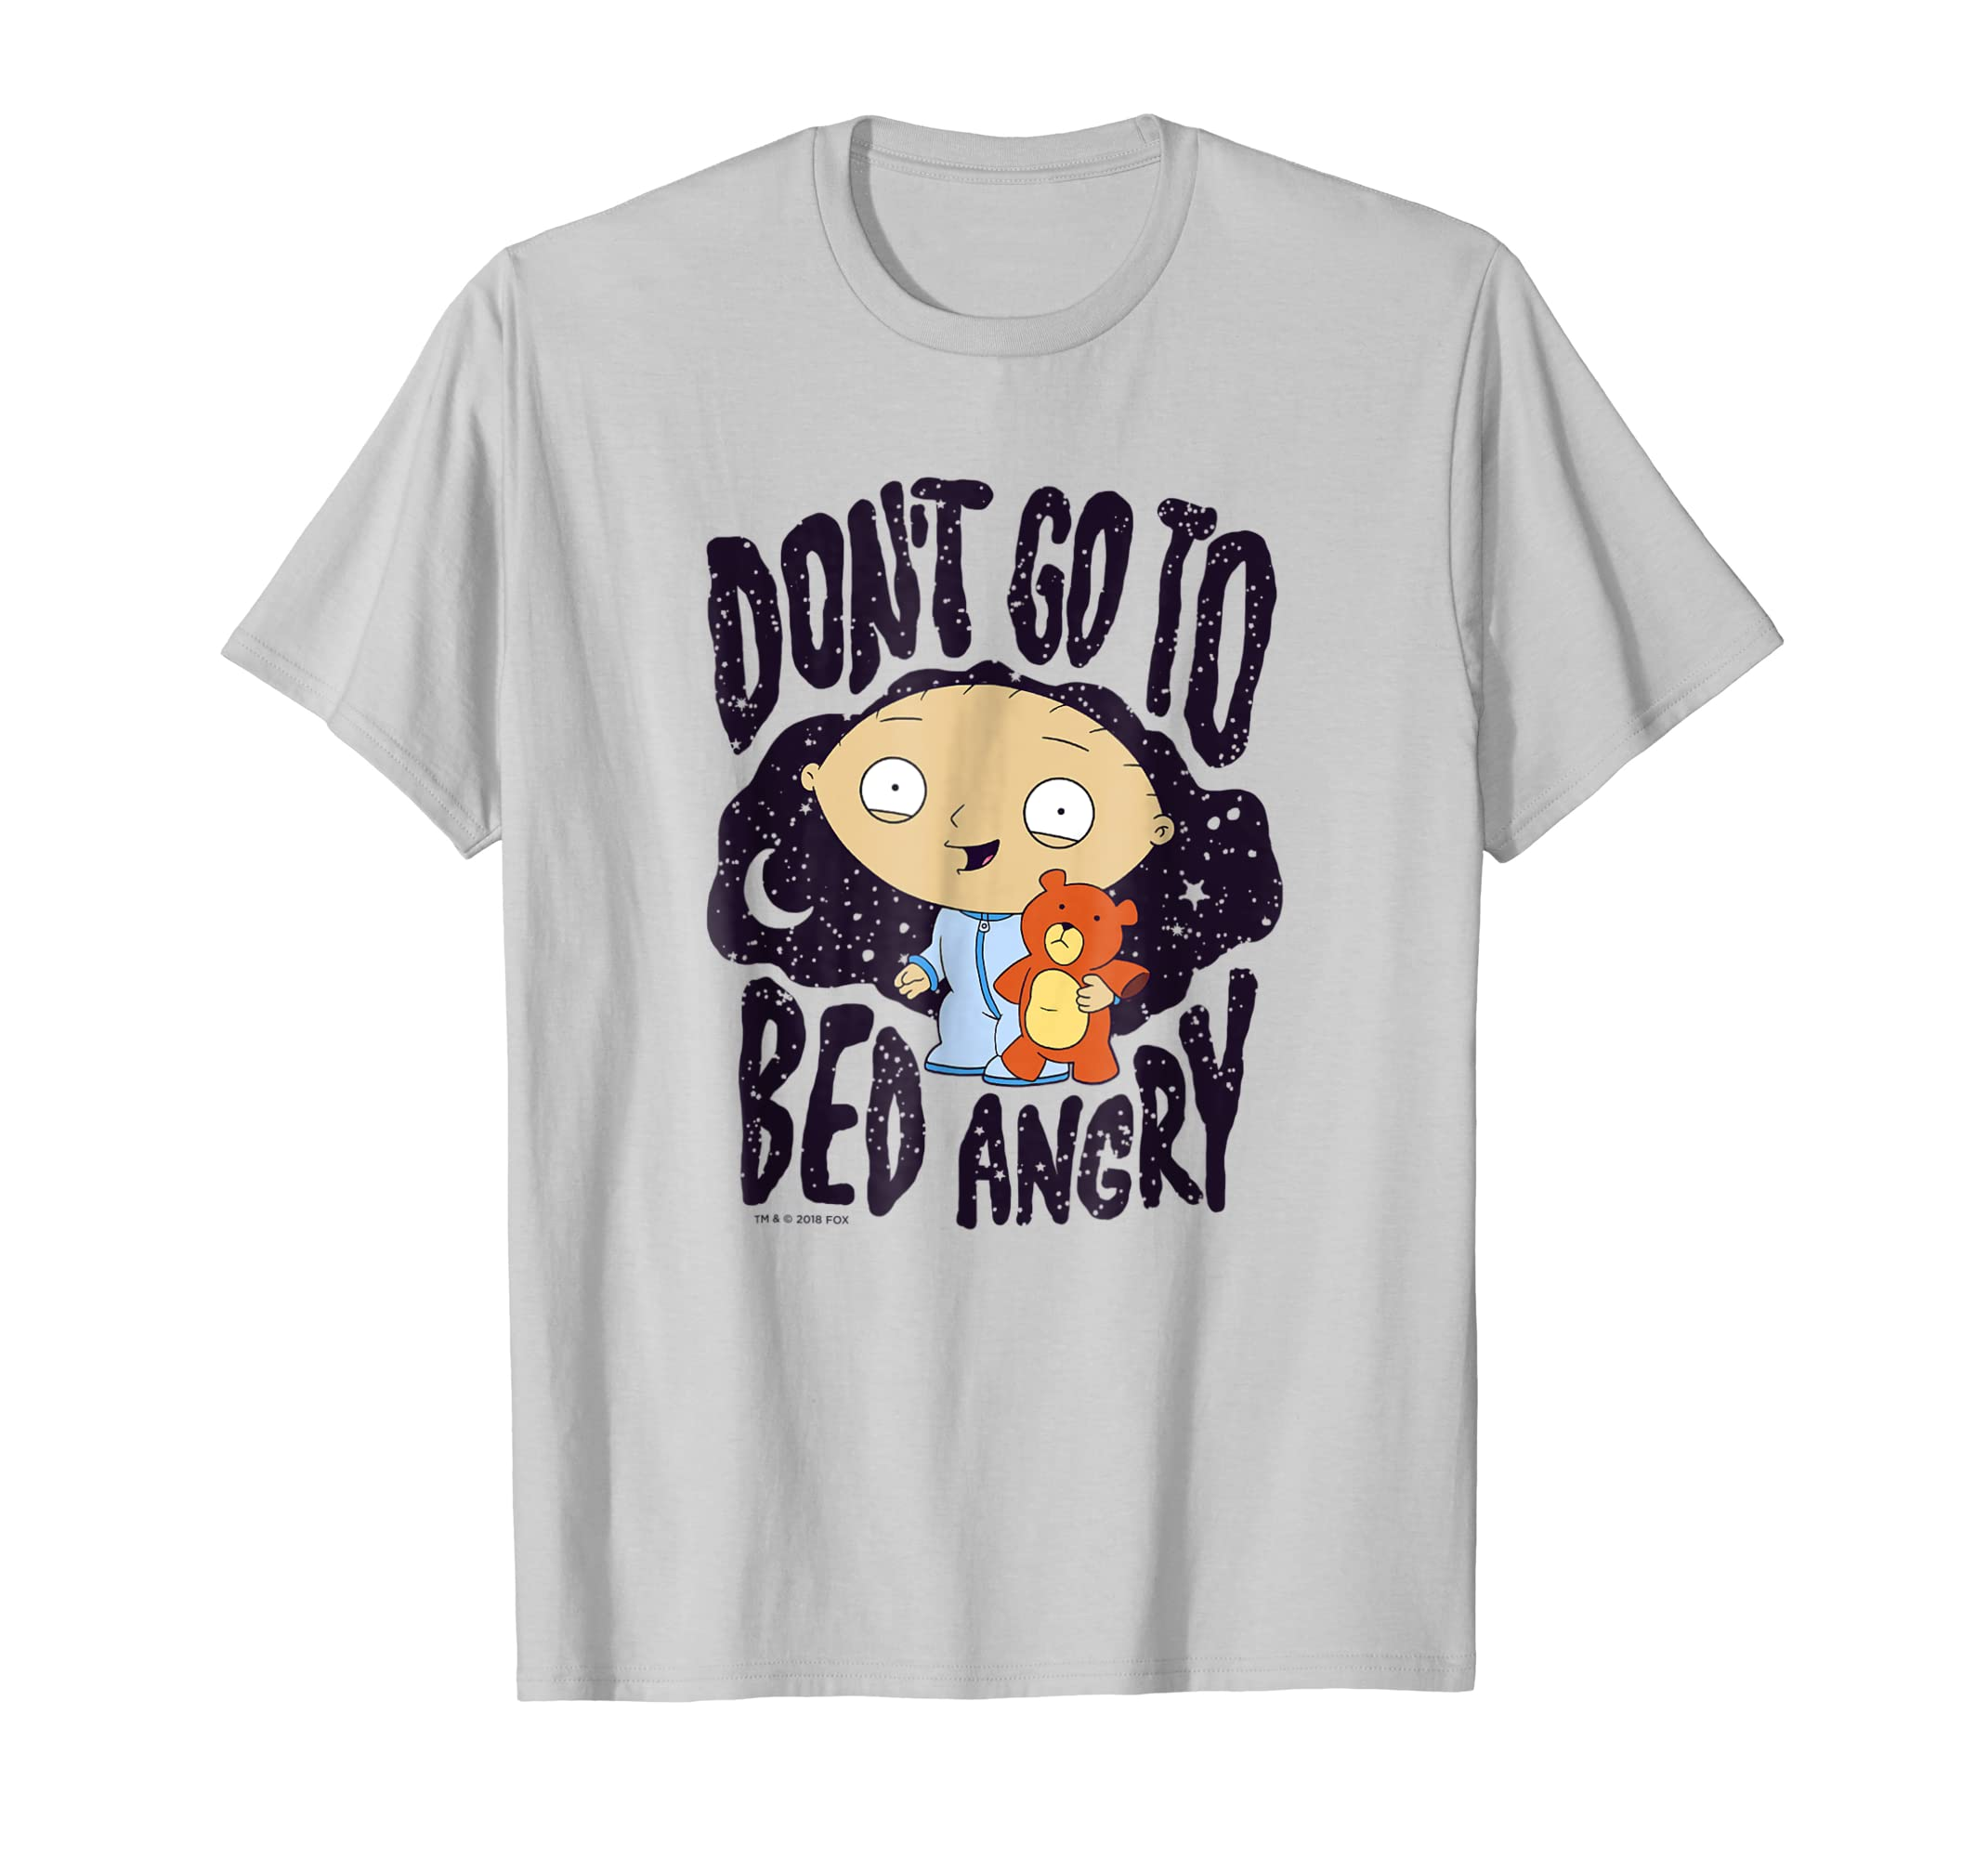 d3dfc4108d424 Amazon.com: Family Guy Stewie Go To Bed Angry T Shirt: Clothing